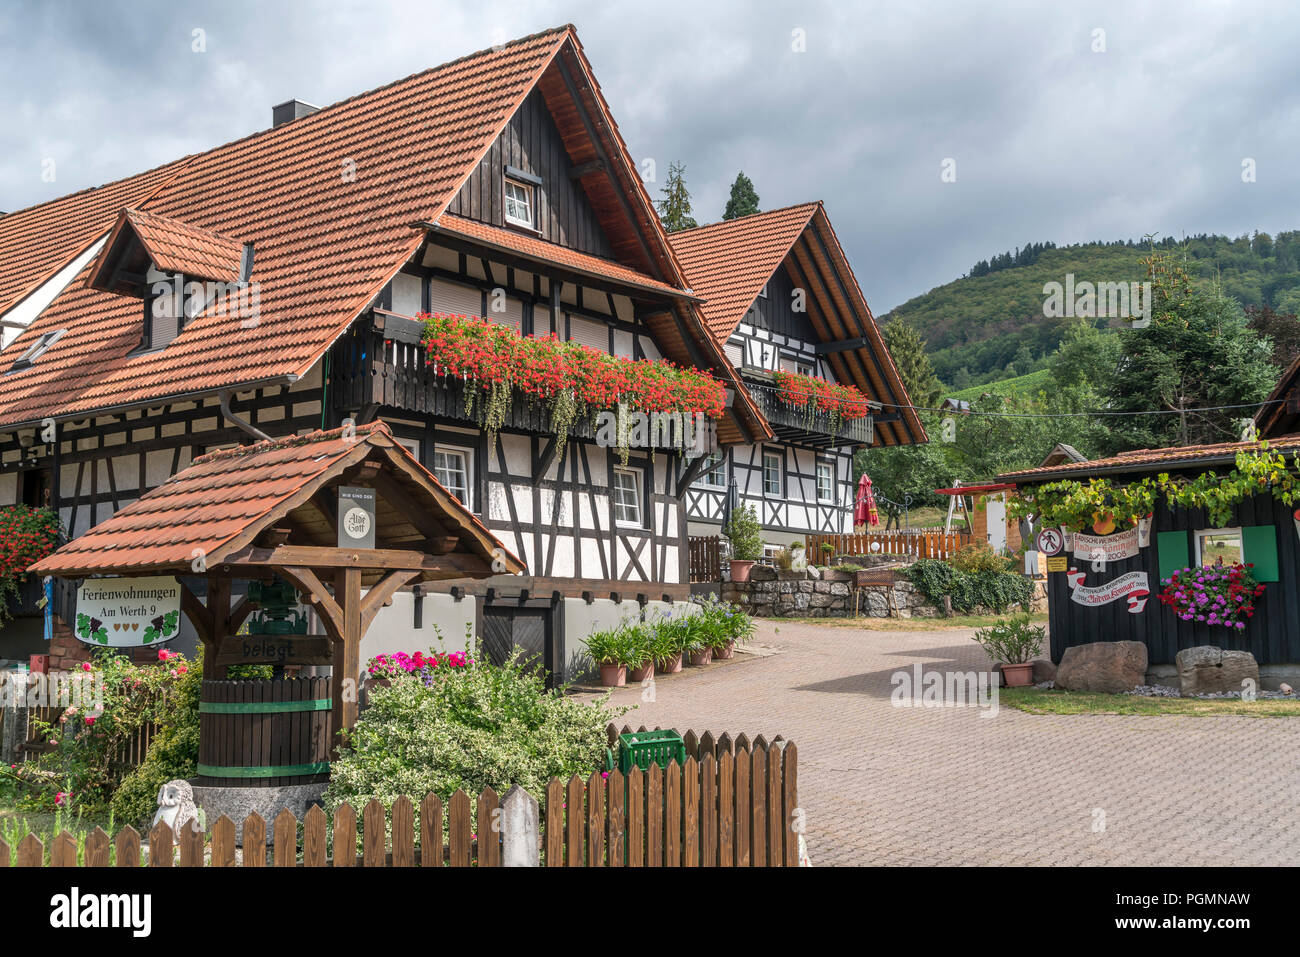 fachwerk in sasbachwalden schwarzwald baden w rttemberg deutschland half timbered houses. Black Bedroom Furniture Sets. Home Design Ideas